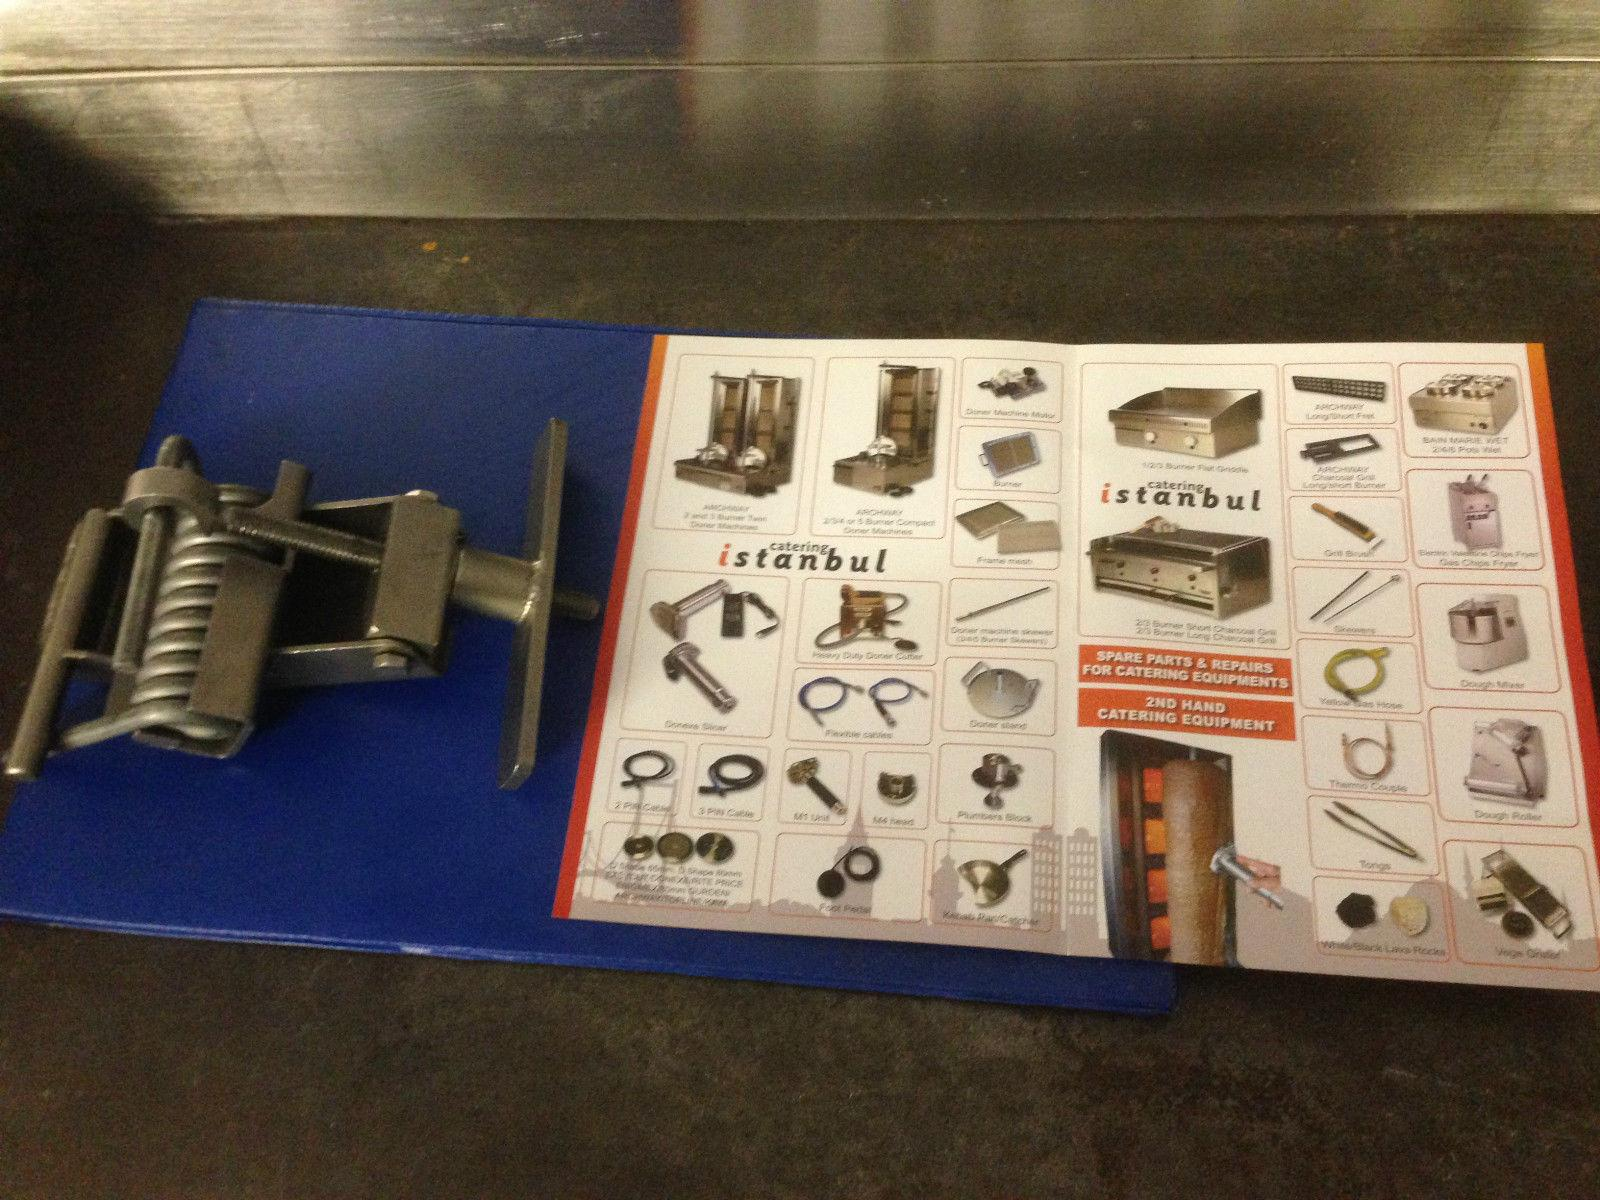 henny penny spring loading tool instructions